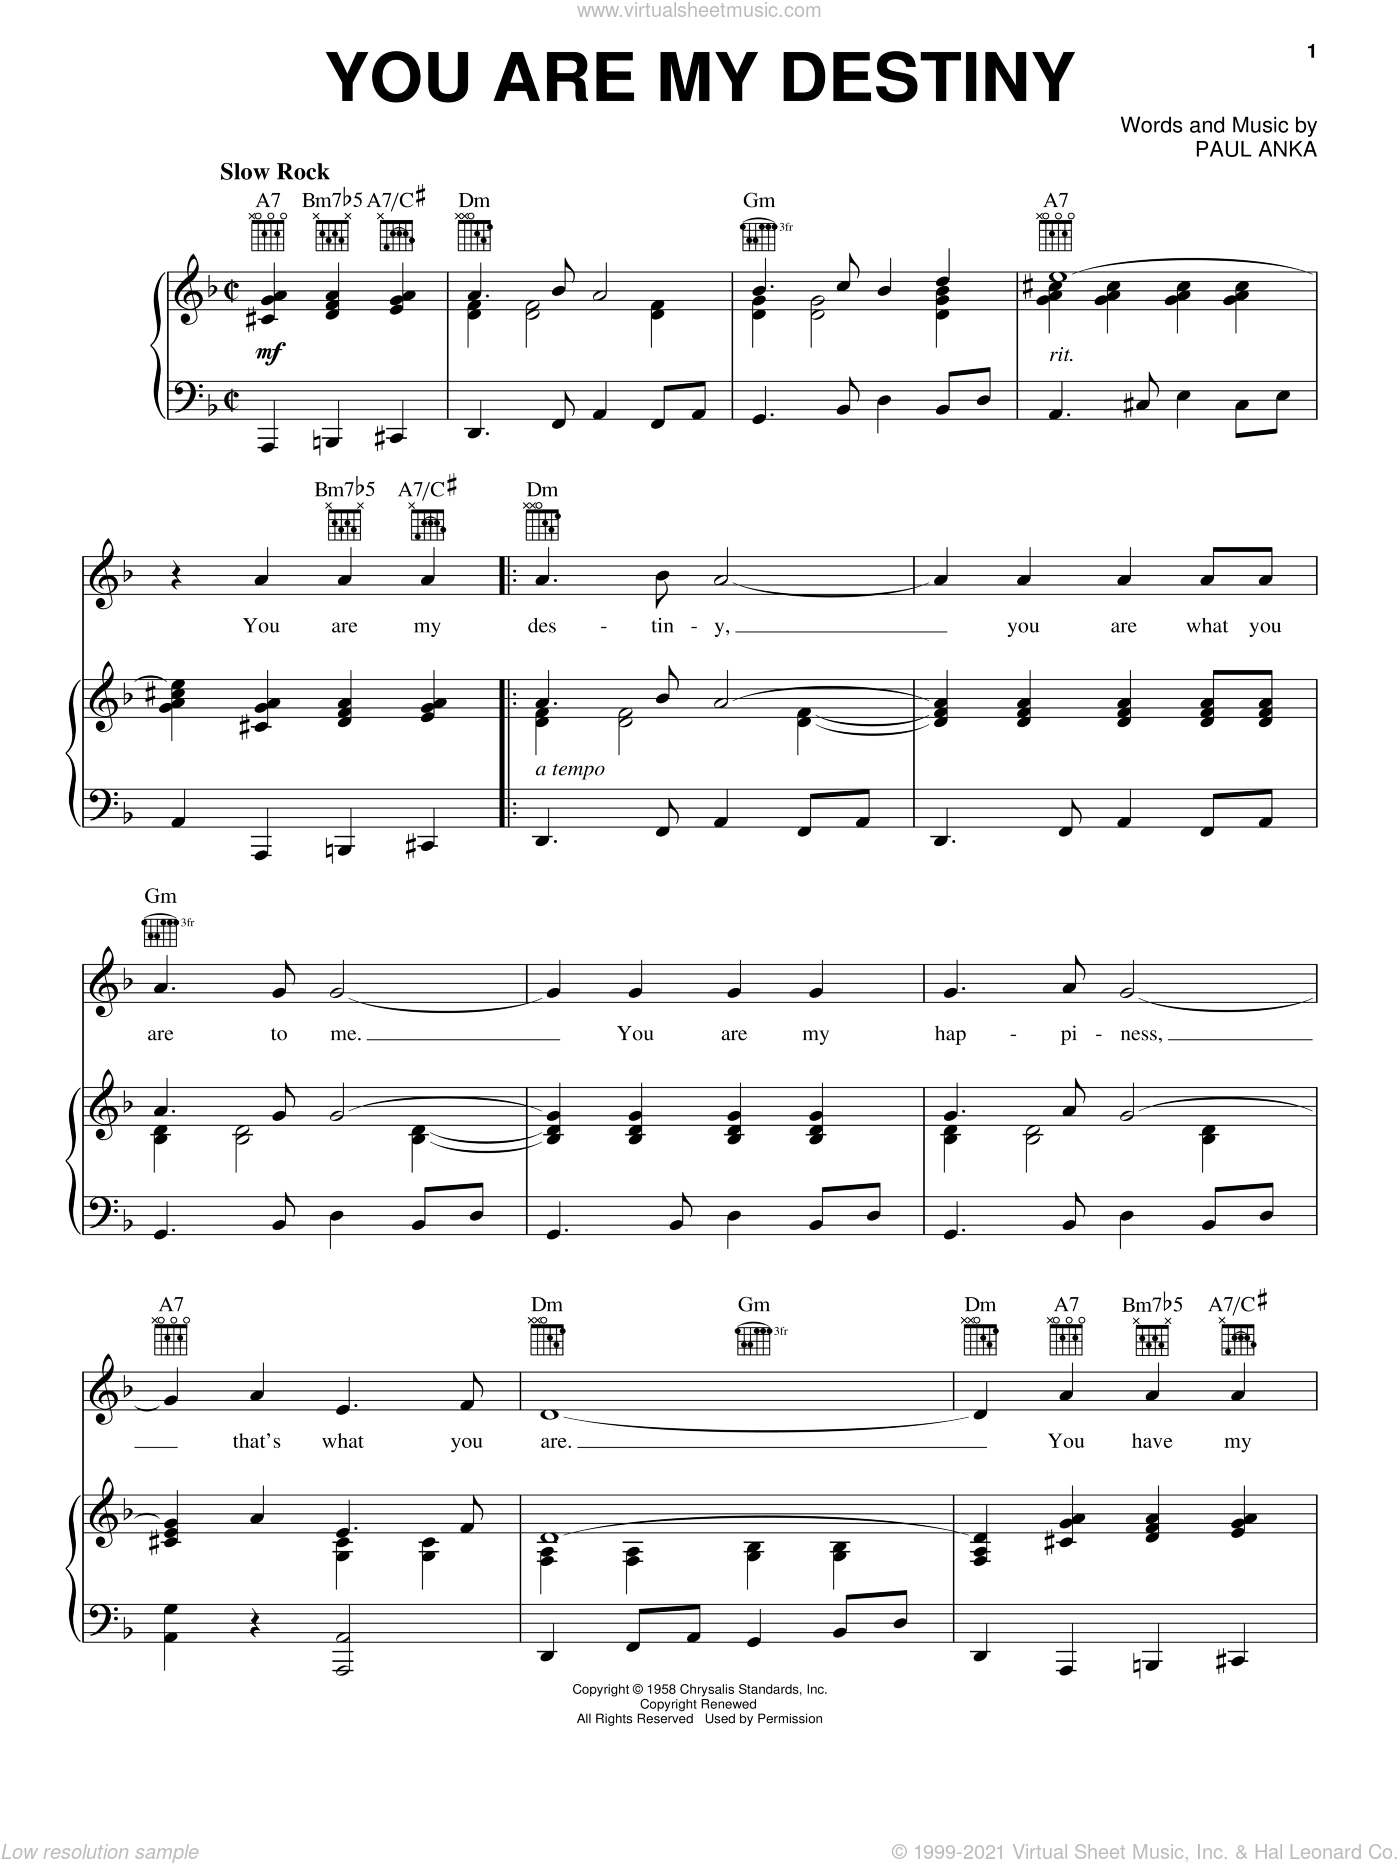 You Are My Destiny sheet music for voice, piano or guitar by Paul Anka, intermediate voice, piano or guitar. Score Image Preview.